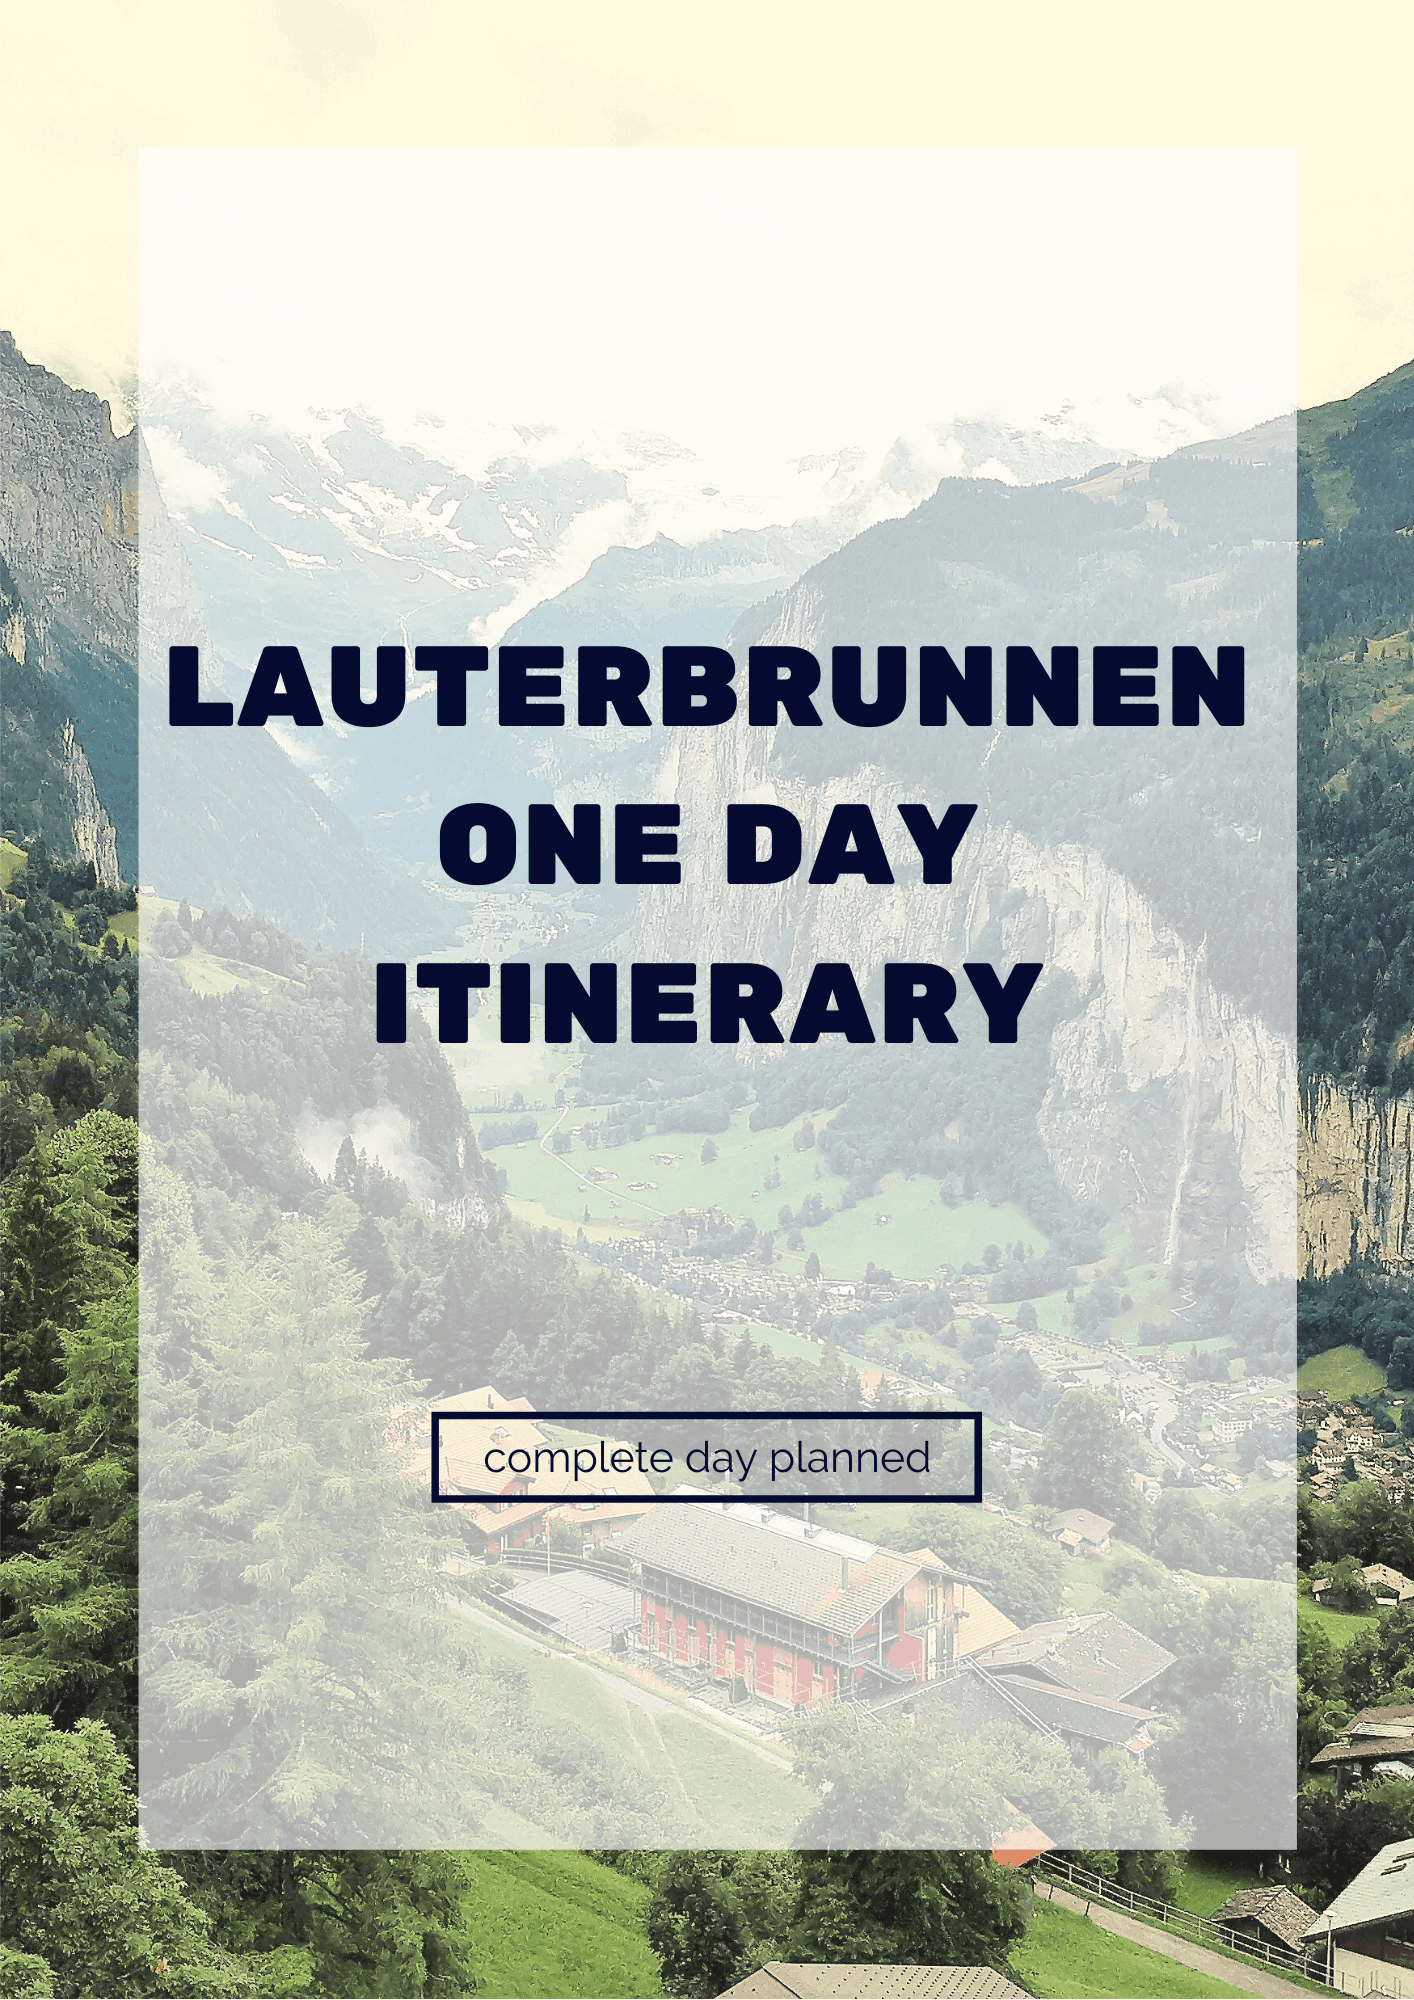 Lauterbrunnen One Day Itinerary 2019